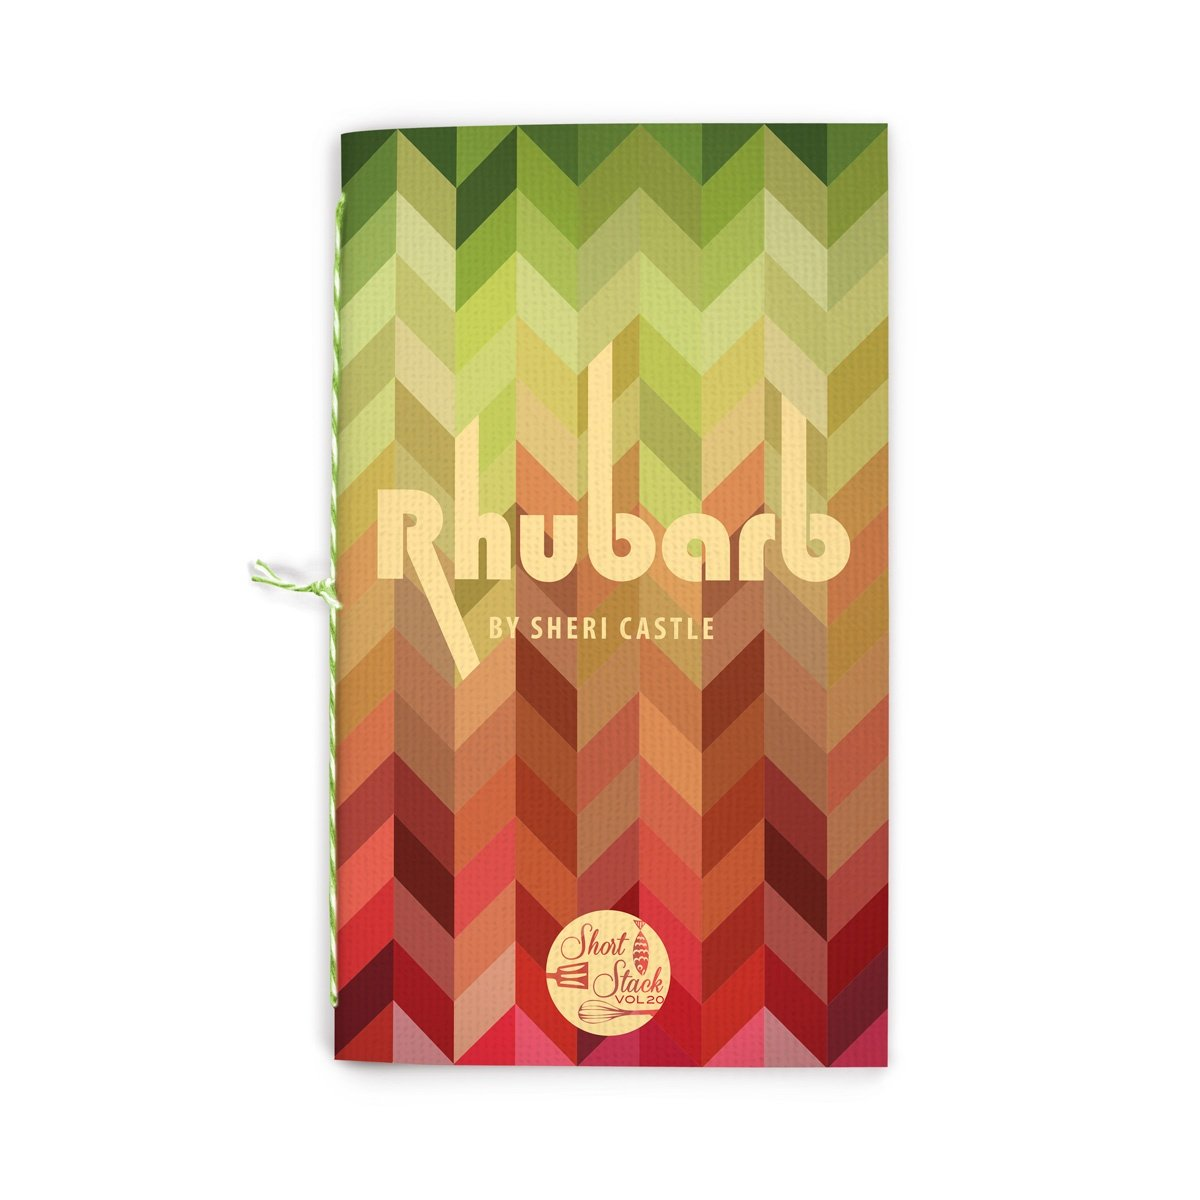 Book cover of Rhubarb by Sheri Castle